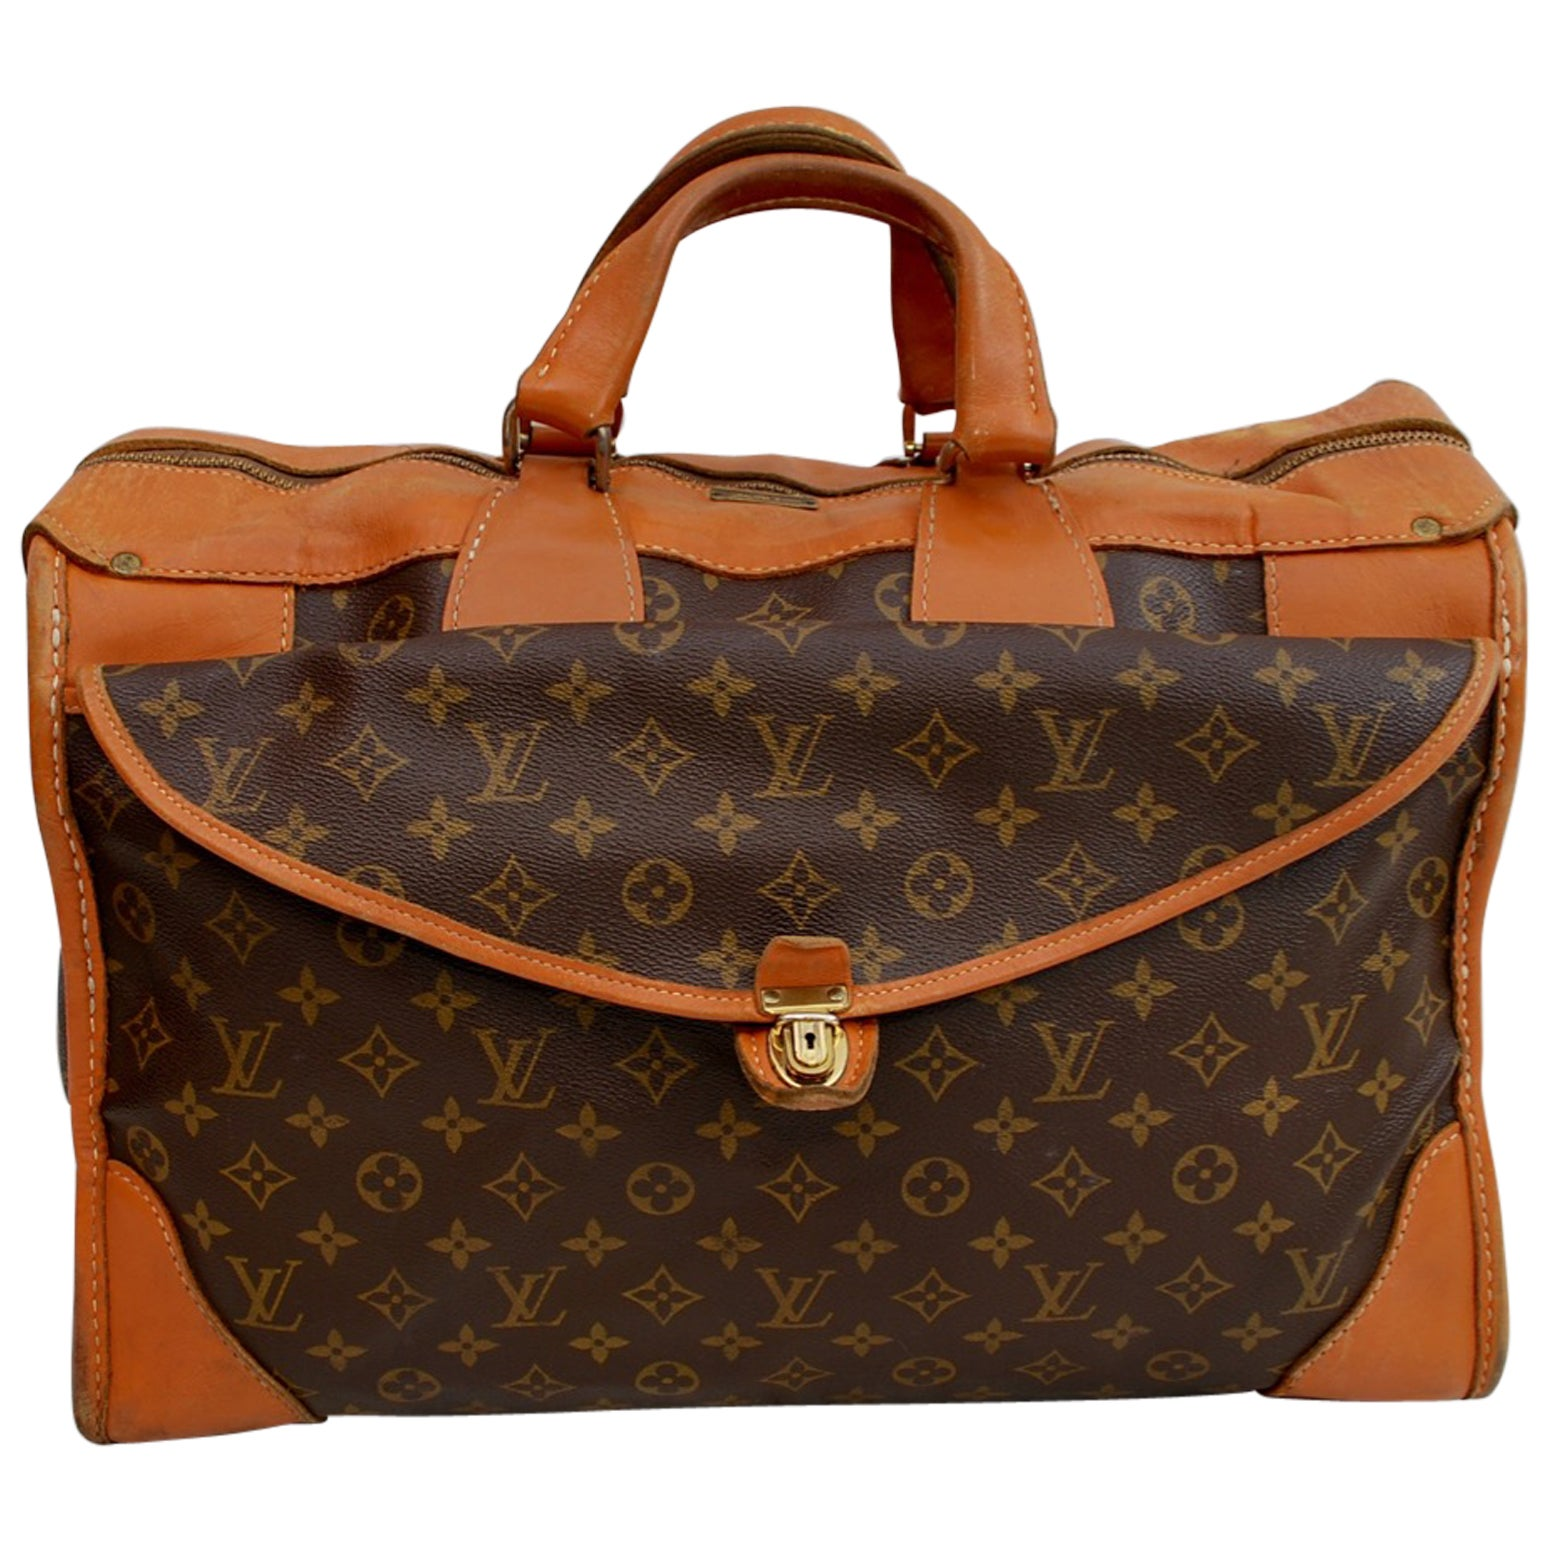 b3f57818a00e 1960s Louis Vuitton Monogram Travel Bag Special Made for Saks Fifth Avenue  For Sale at 1stdibs